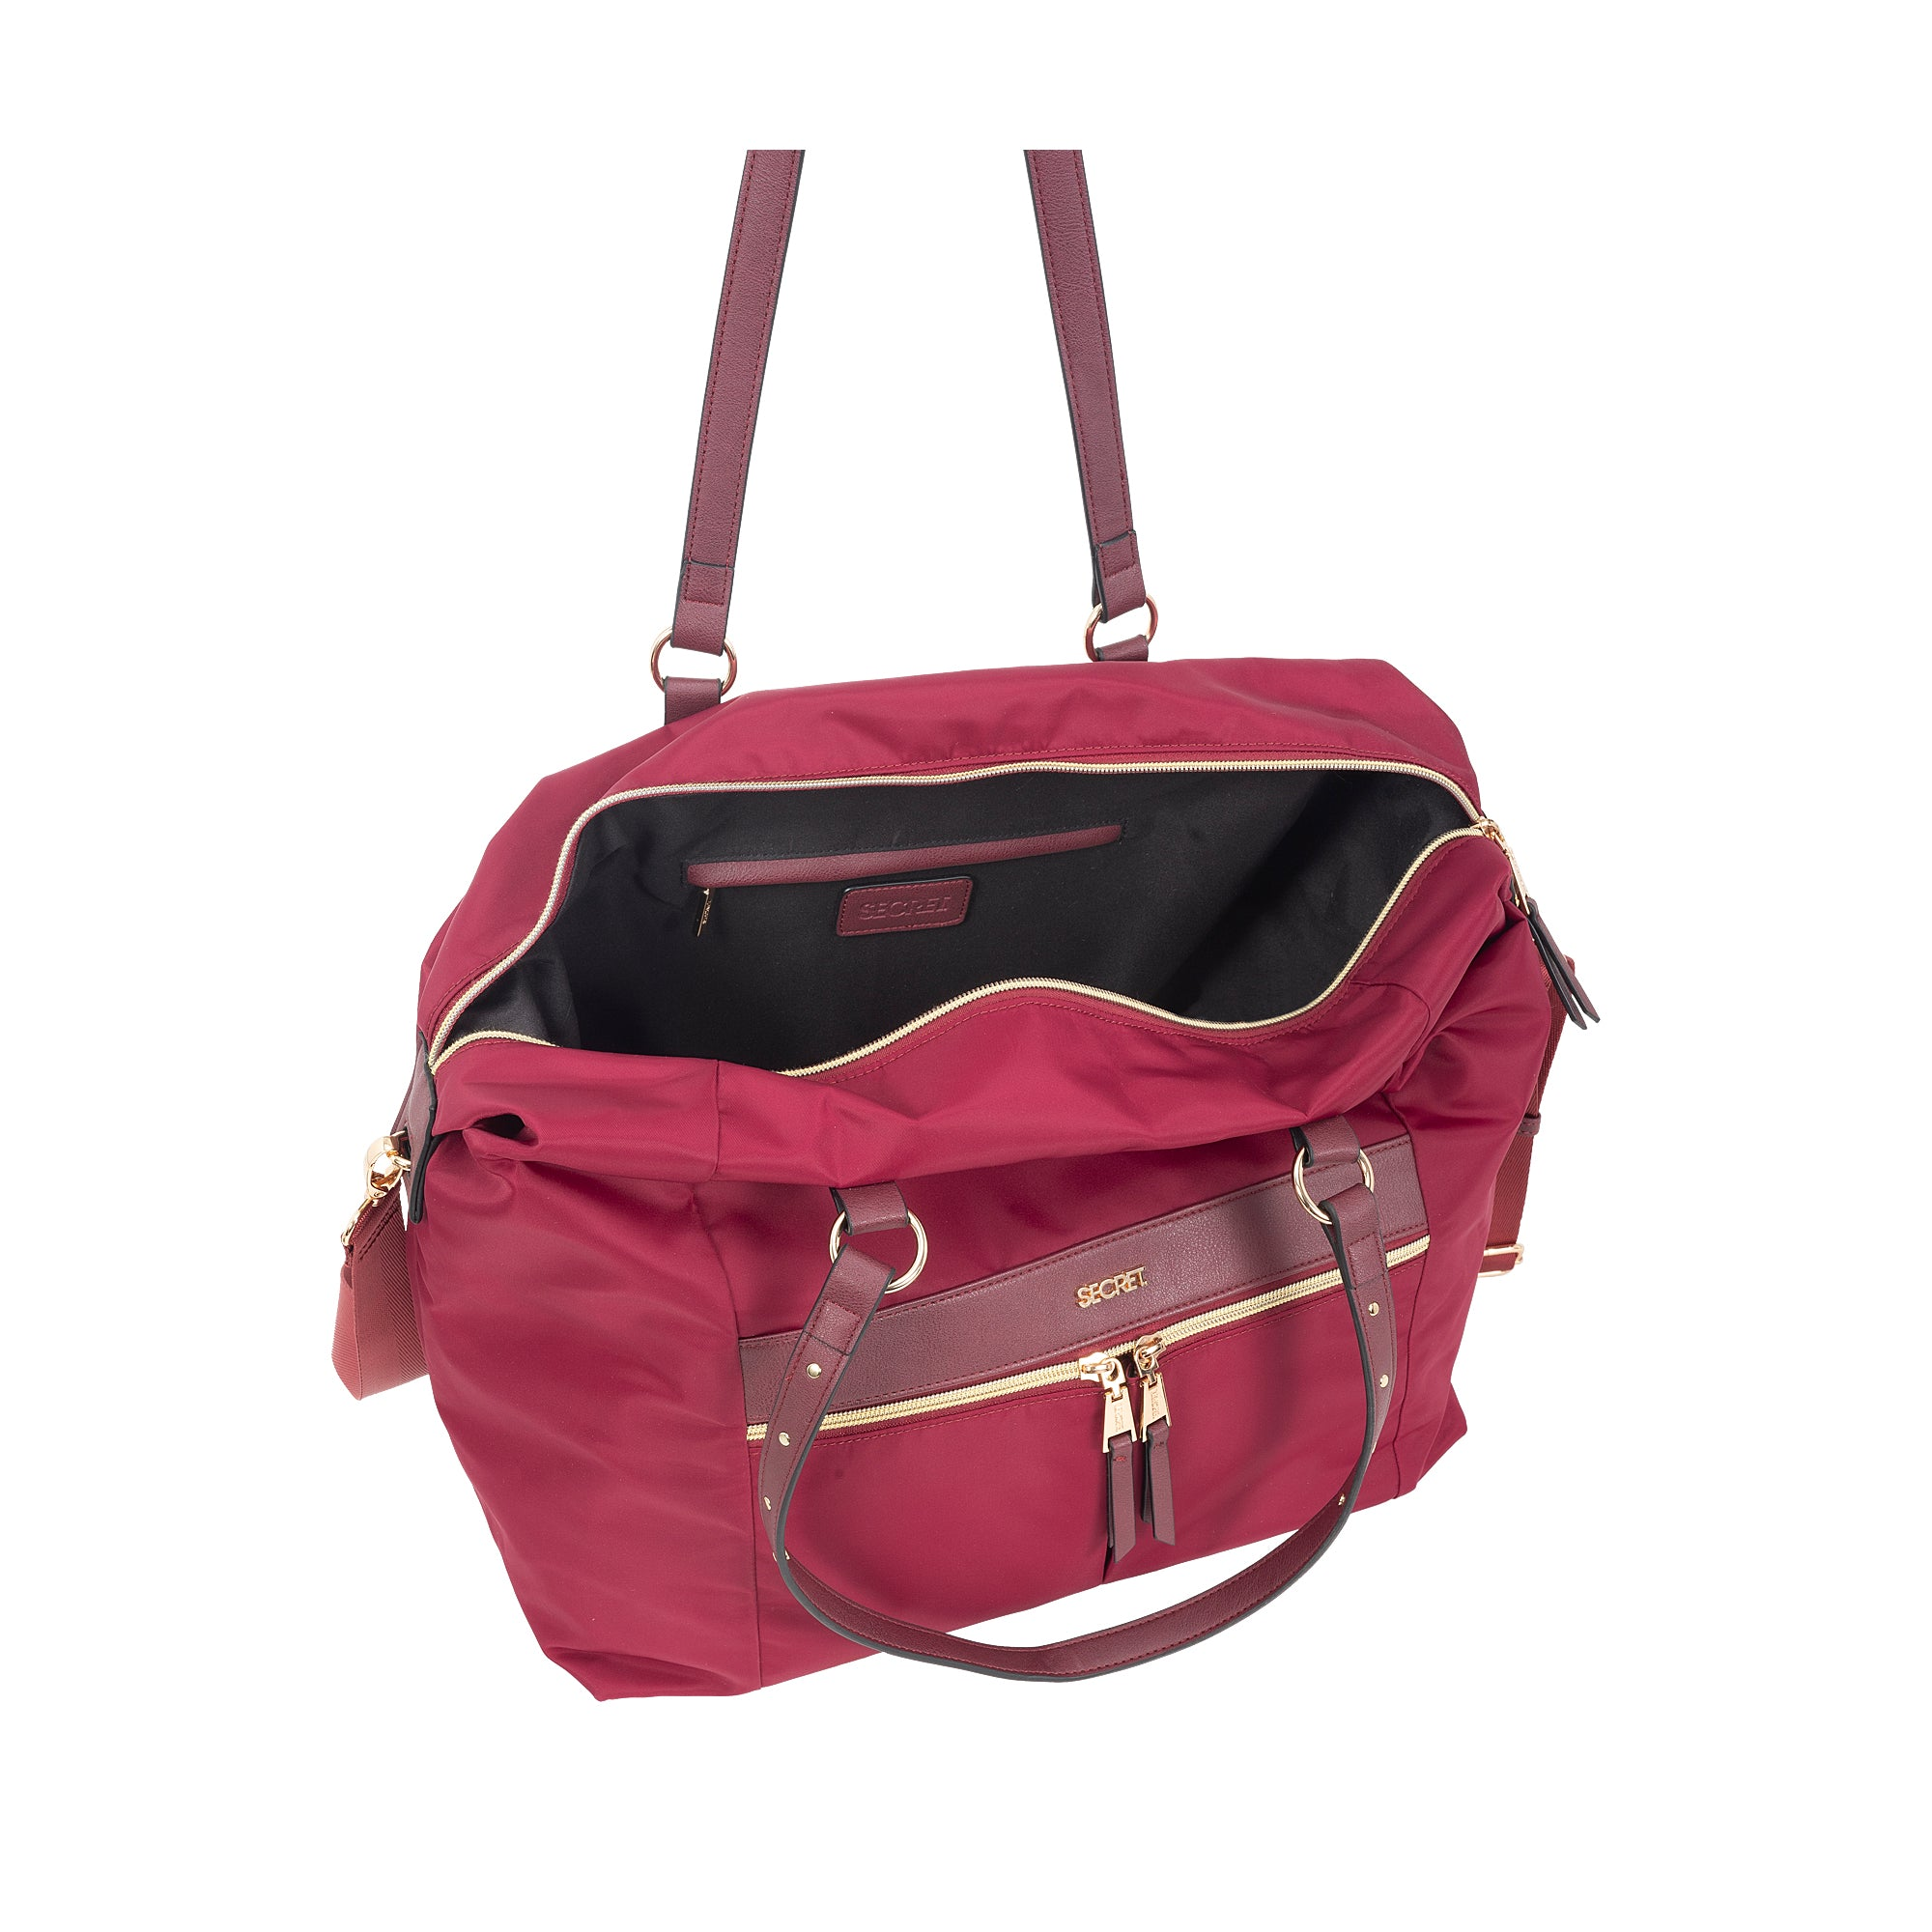 Bolso Barein Travel bag Burgundy L